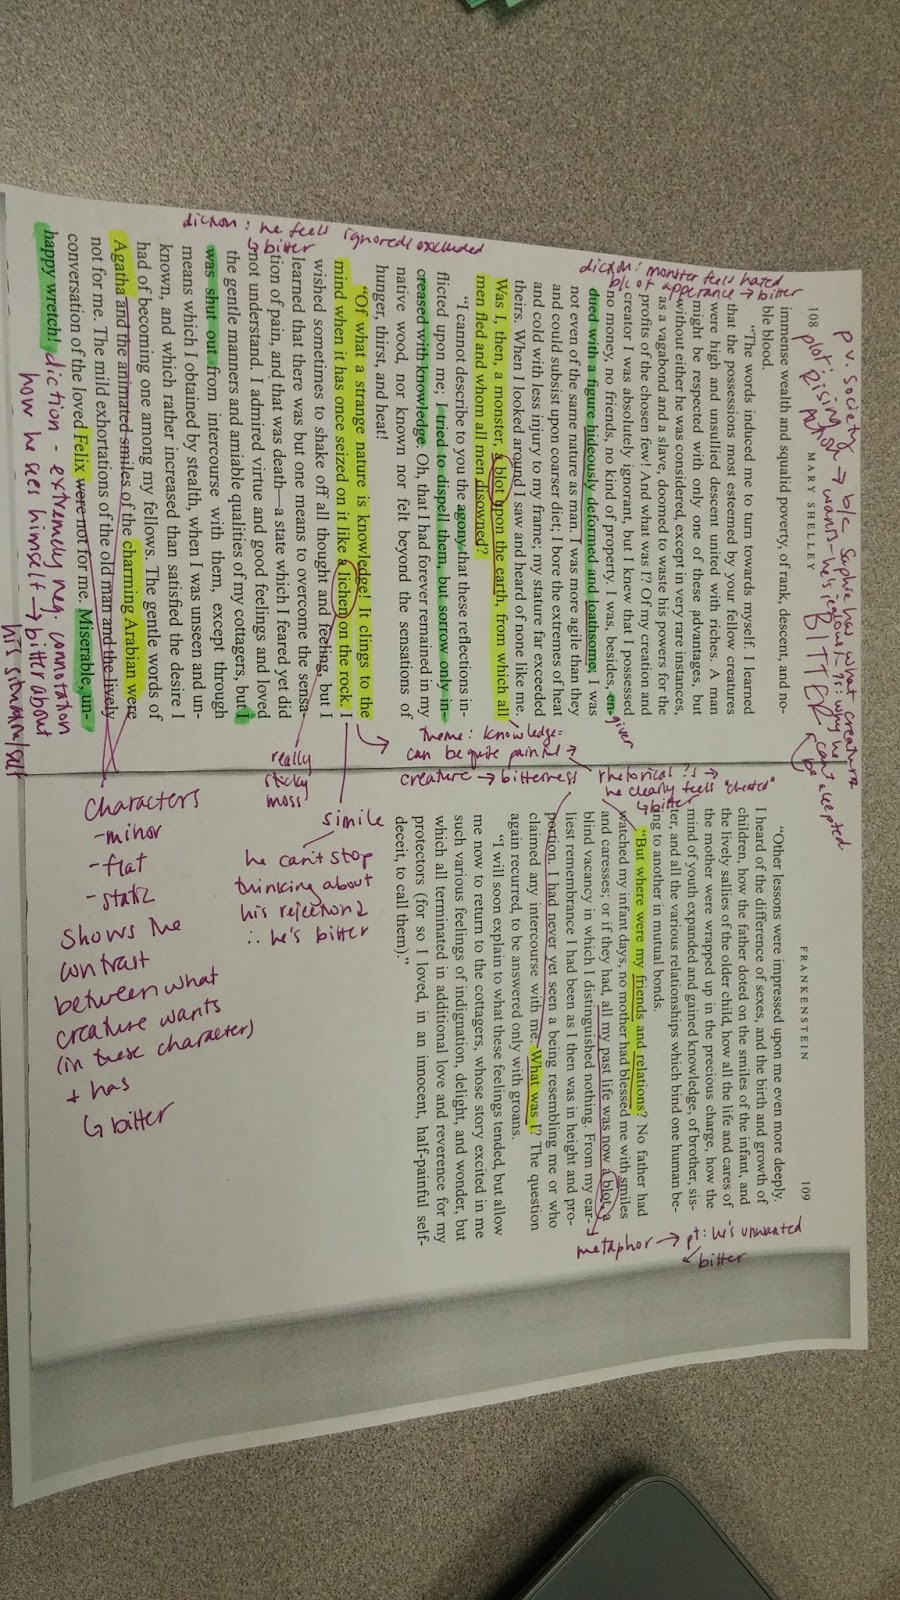 comparative essay frankenstein macbeth The kite runner and king lear comparative essay families play a large role in our world victor frankenstein and macbeth both demonstrate that acquisition of knowledge is dangerous and to seek it for the purpose of power leads to destruction of life.